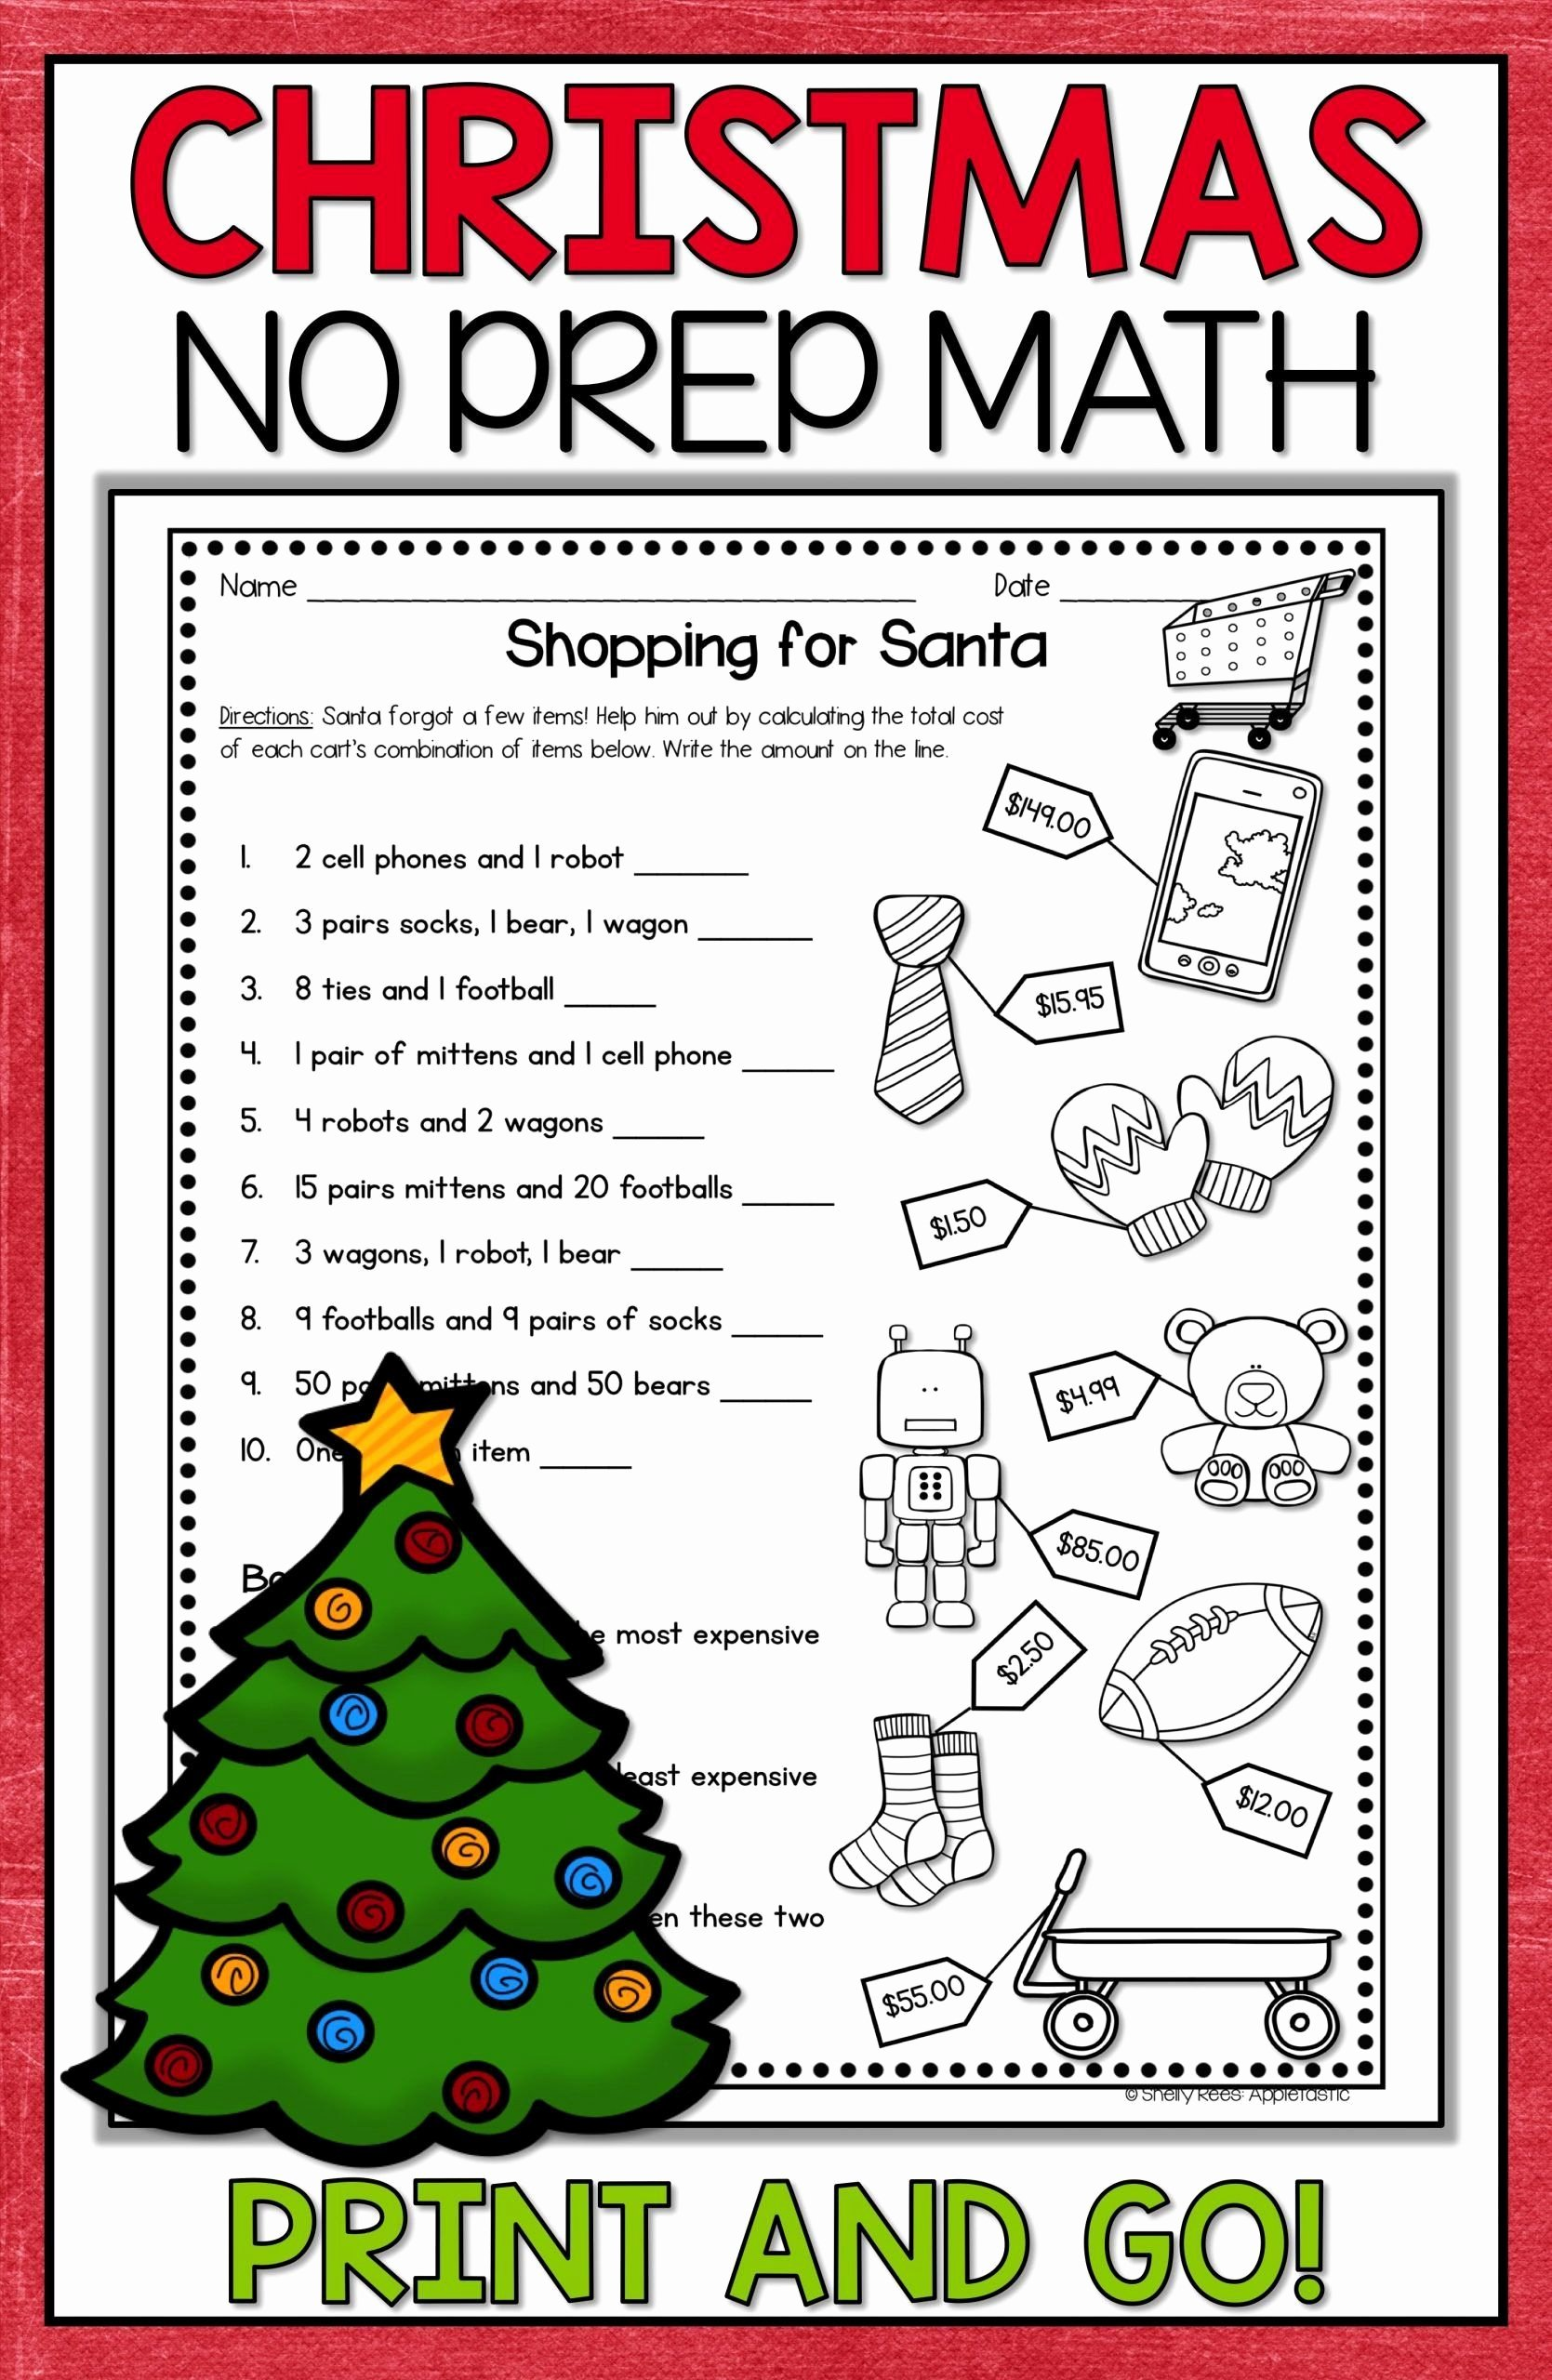 Holiday Math Worksheets Middle School New Christmas Math Worksheets Middle School Christmas Math